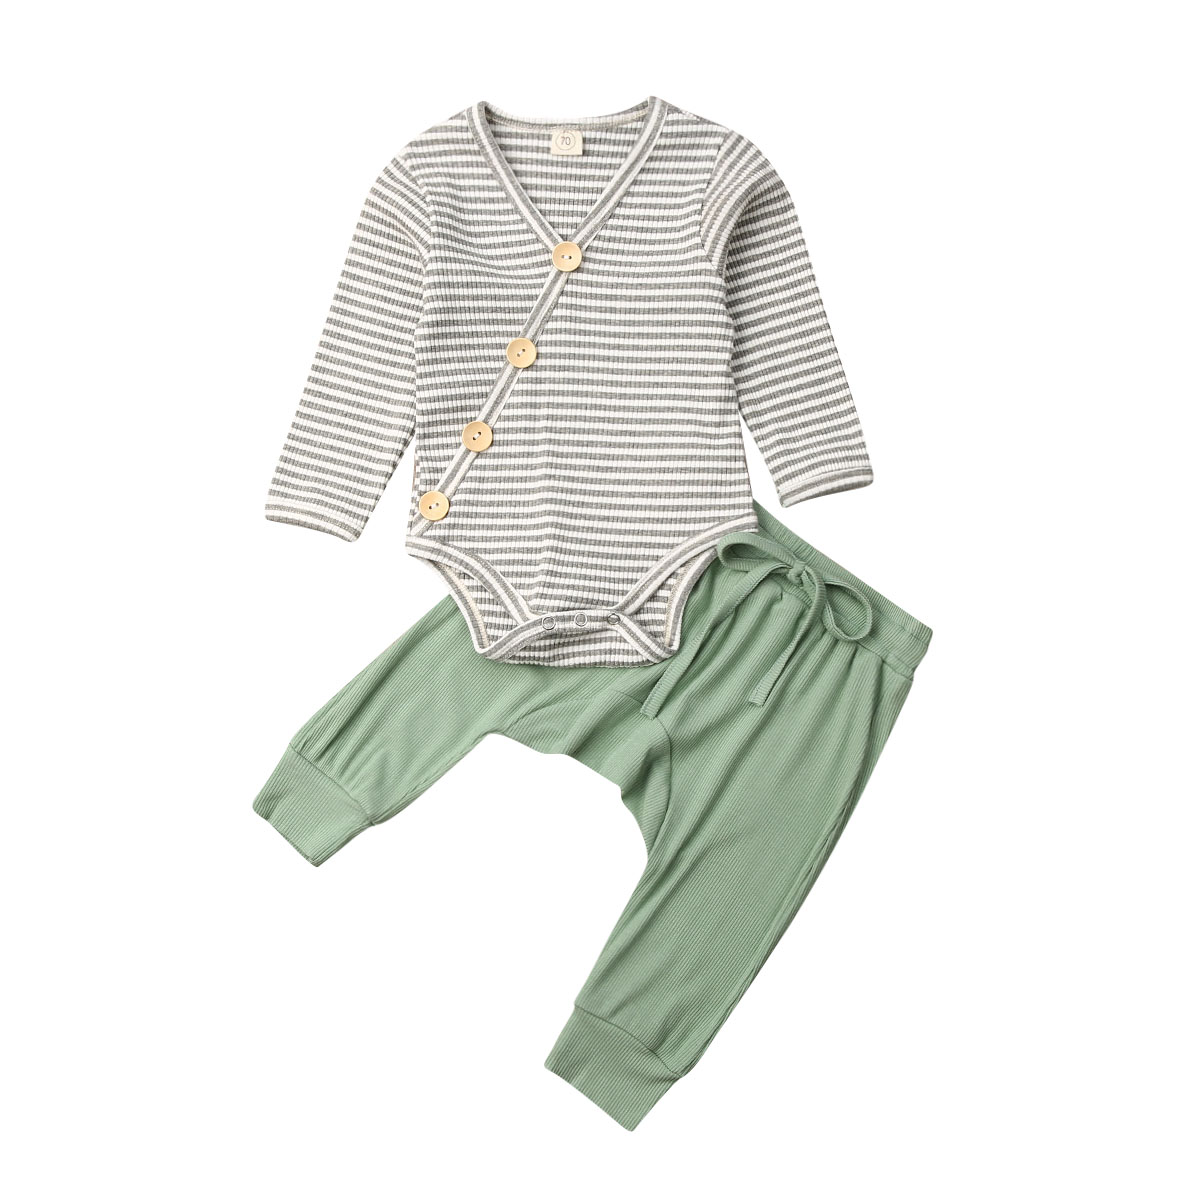 0-18Months New Born Baby Infant Boys Clothes Striped Long Sleeve Bodysuits +pants 2pcs Set Casual Outfits